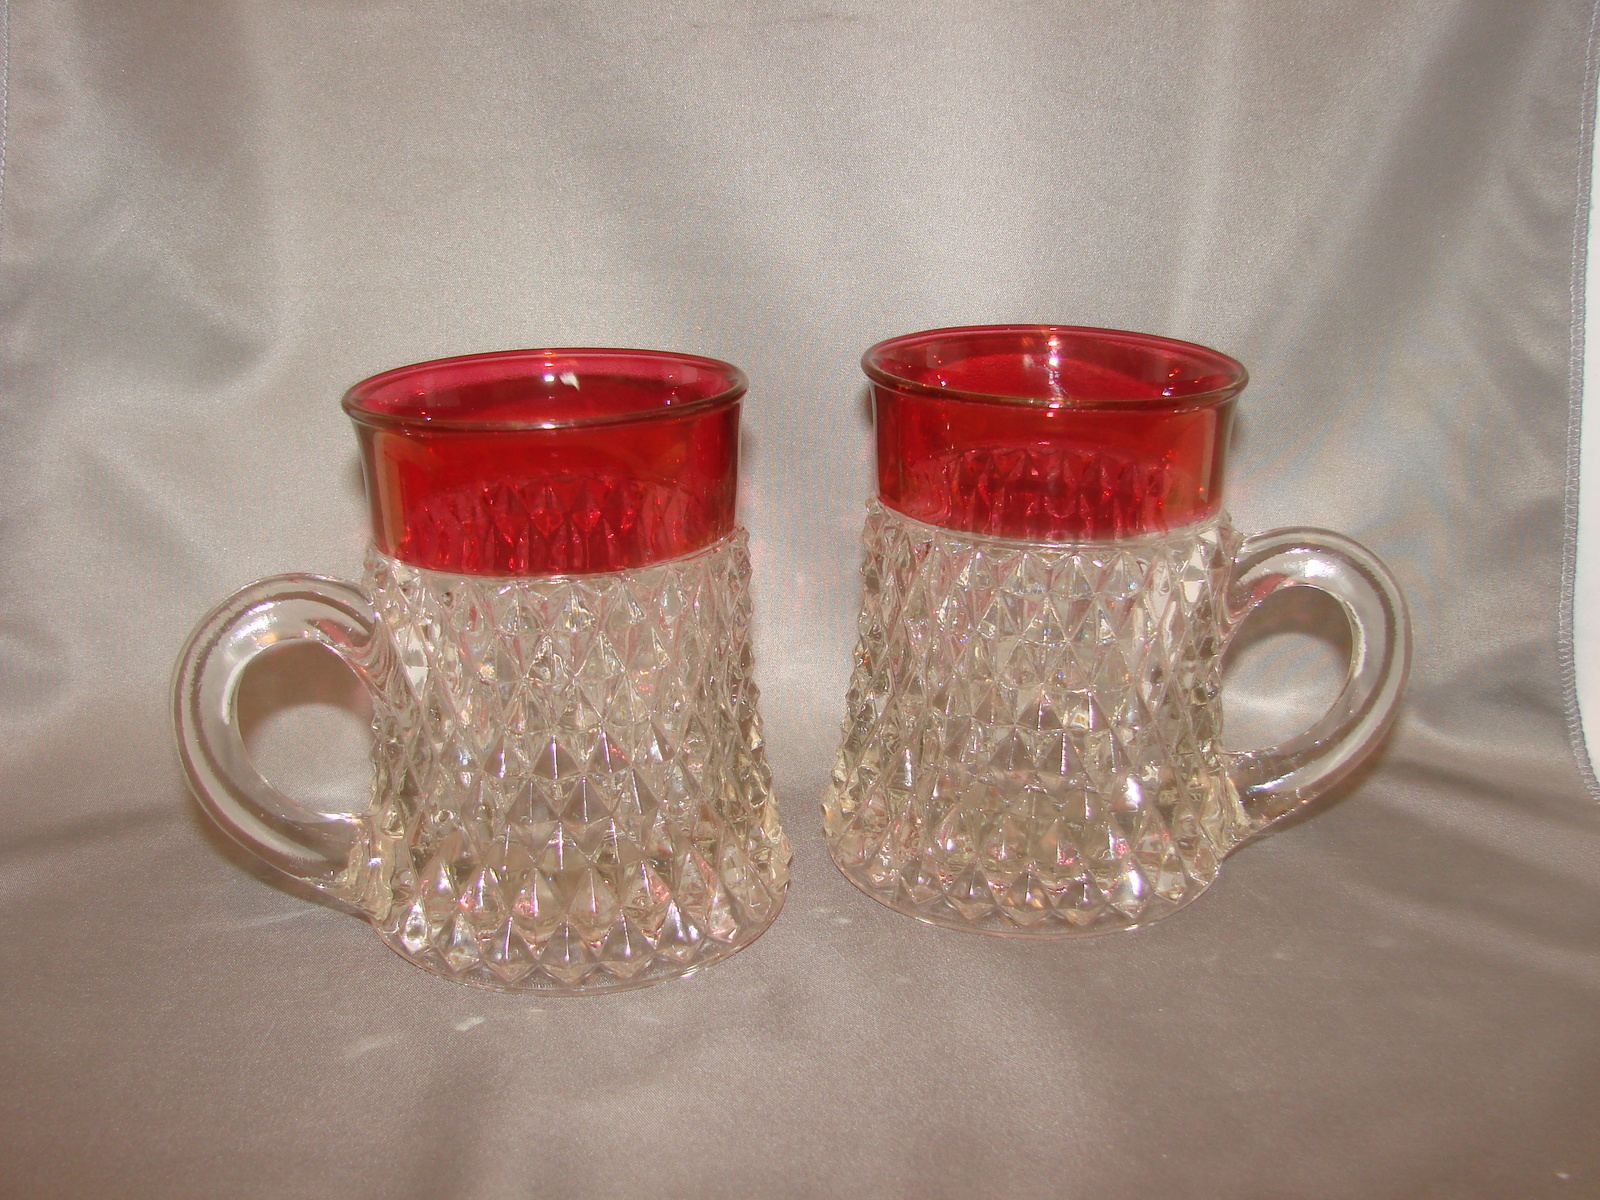 Indiana Glass Diamond Point Clear with Ruby Flash Edge Mugs (2) - $16.00